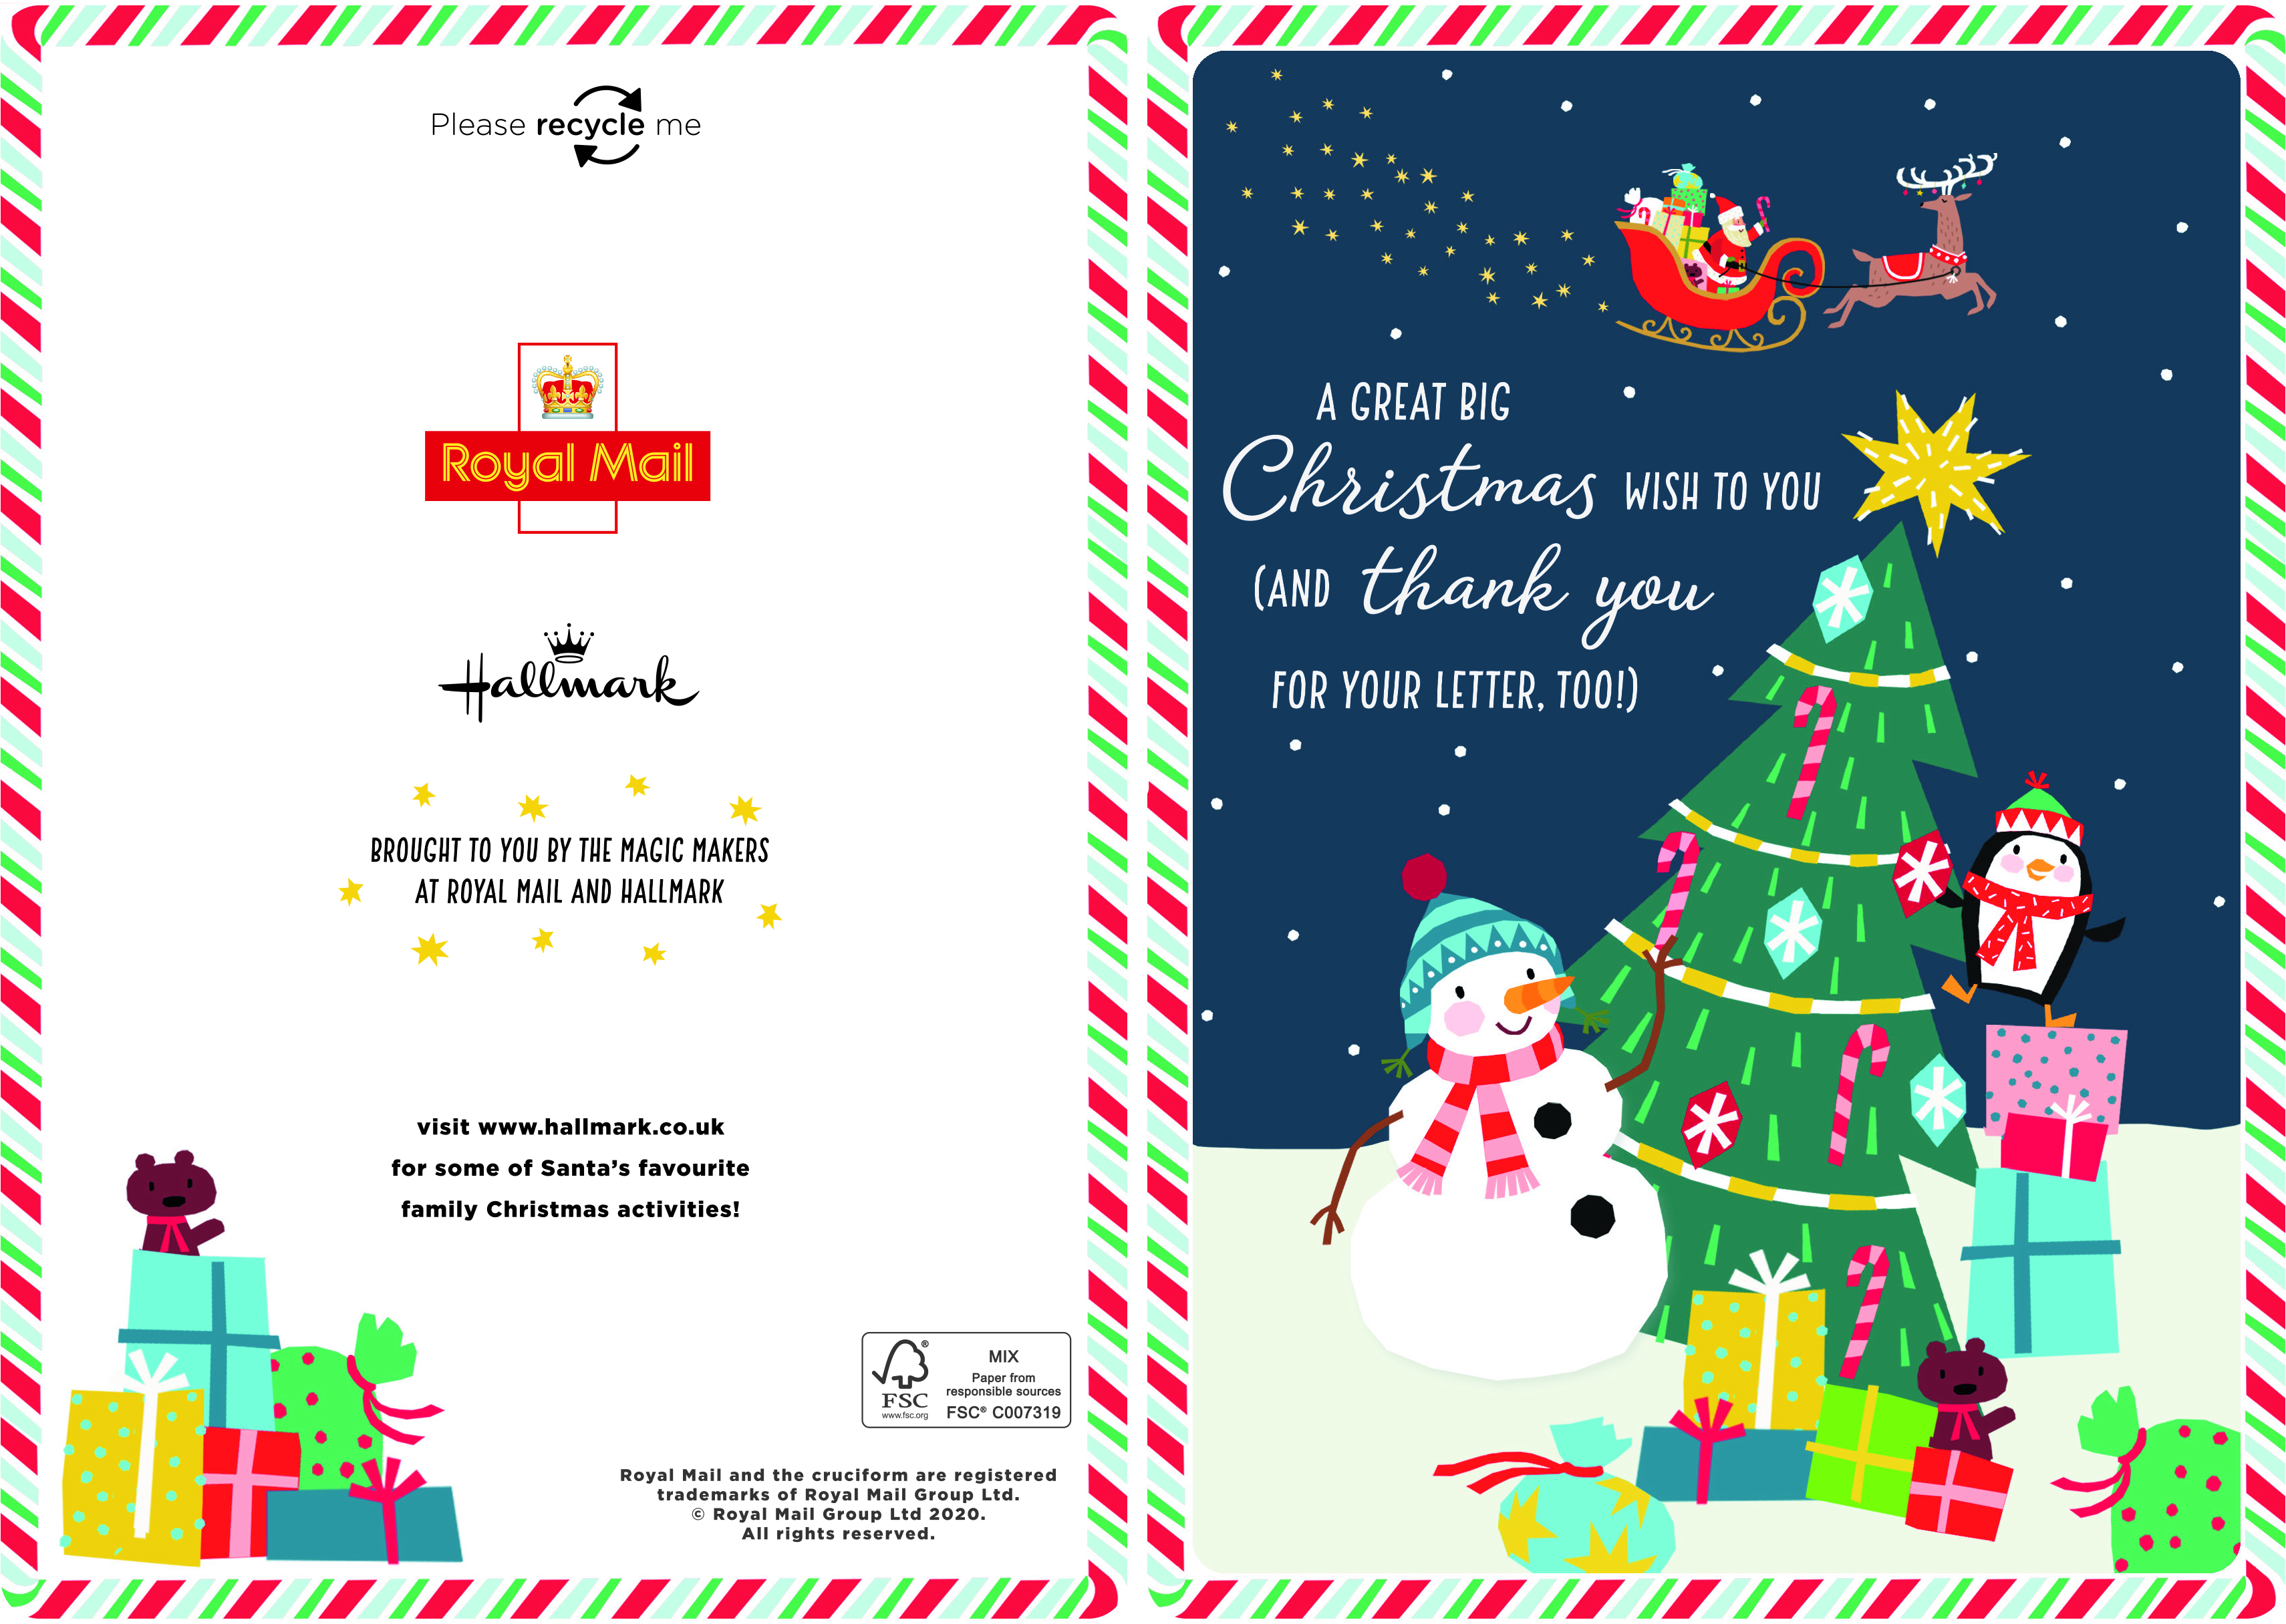 Above: The special Hallmark card that will be sent to up to 300,000 children this year from Santa.